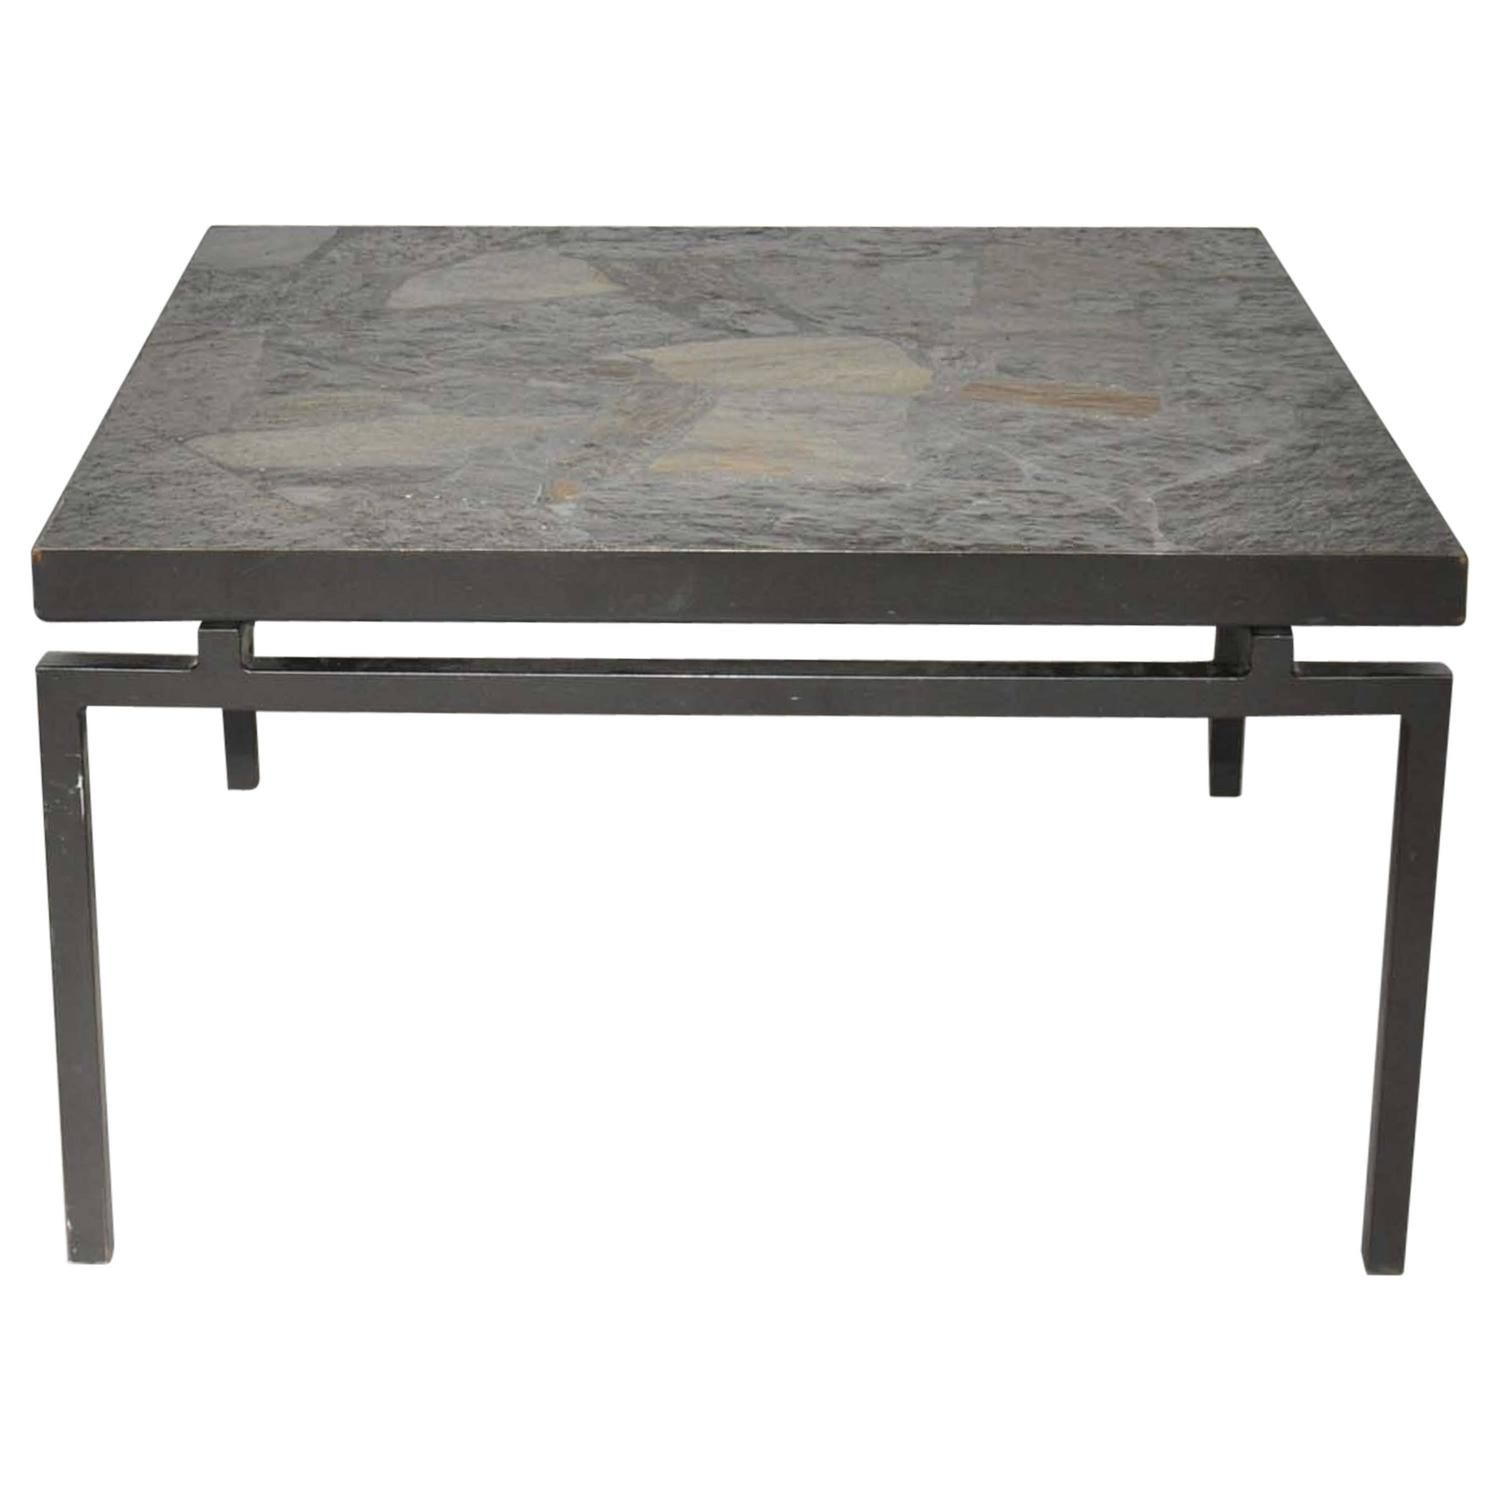 Mid Century Brutalist Stone Mosaic Coffee Table the Netherlands